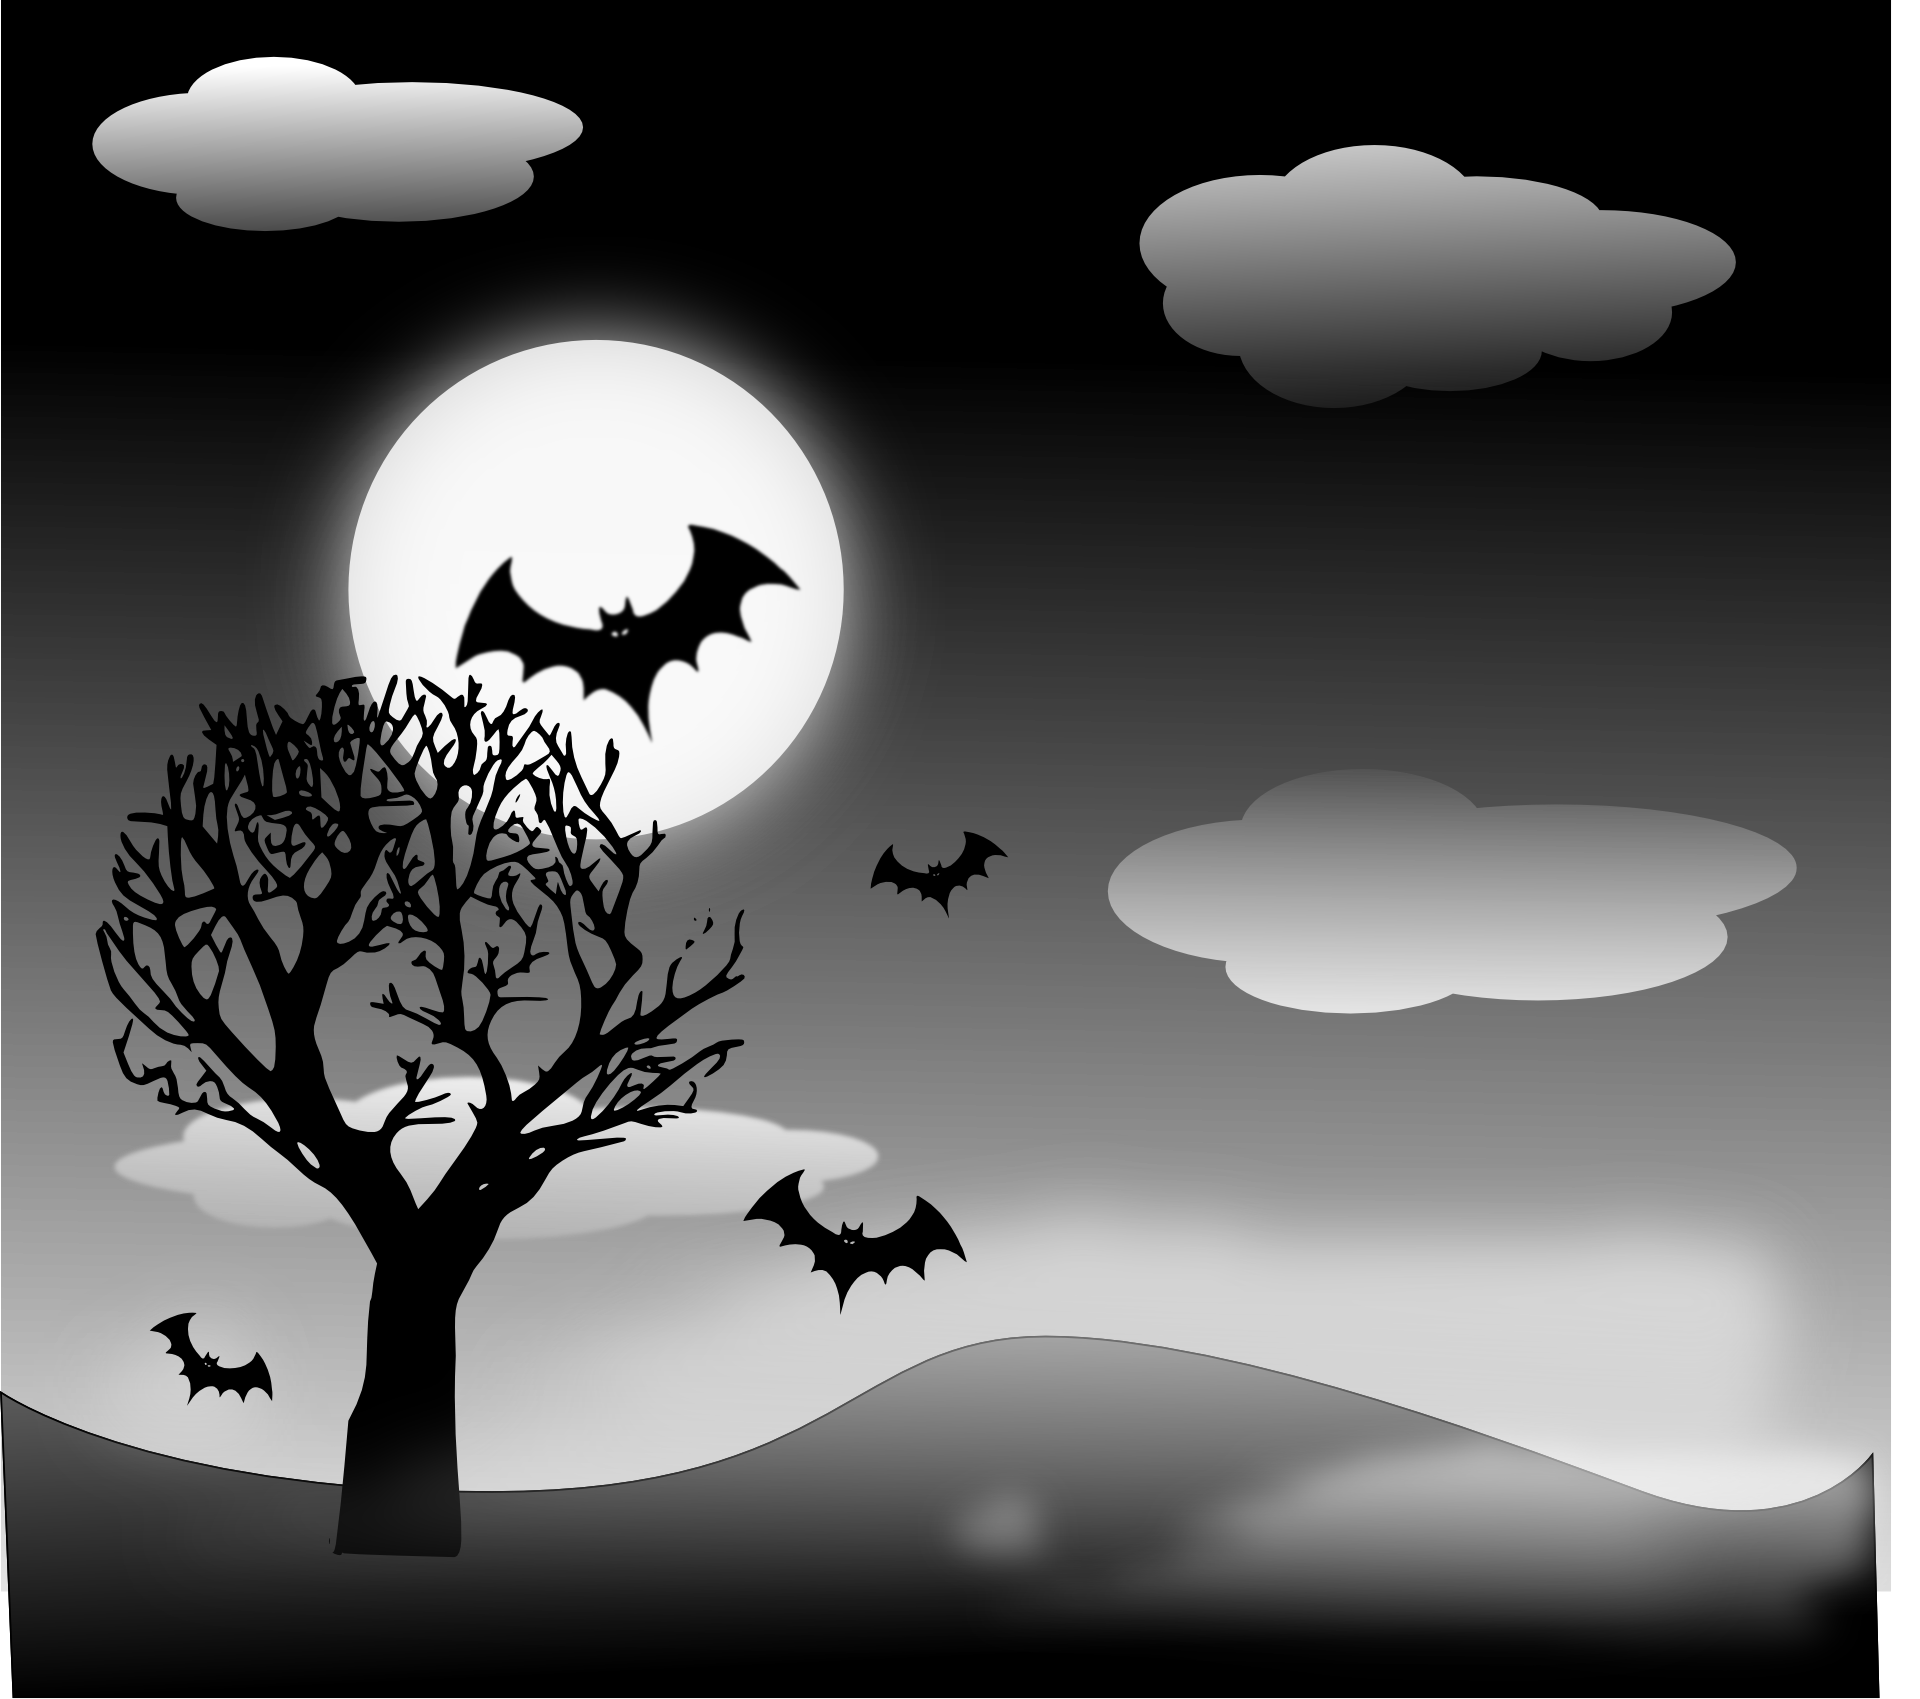 Drawing halloween landscape. Of spooky with flying